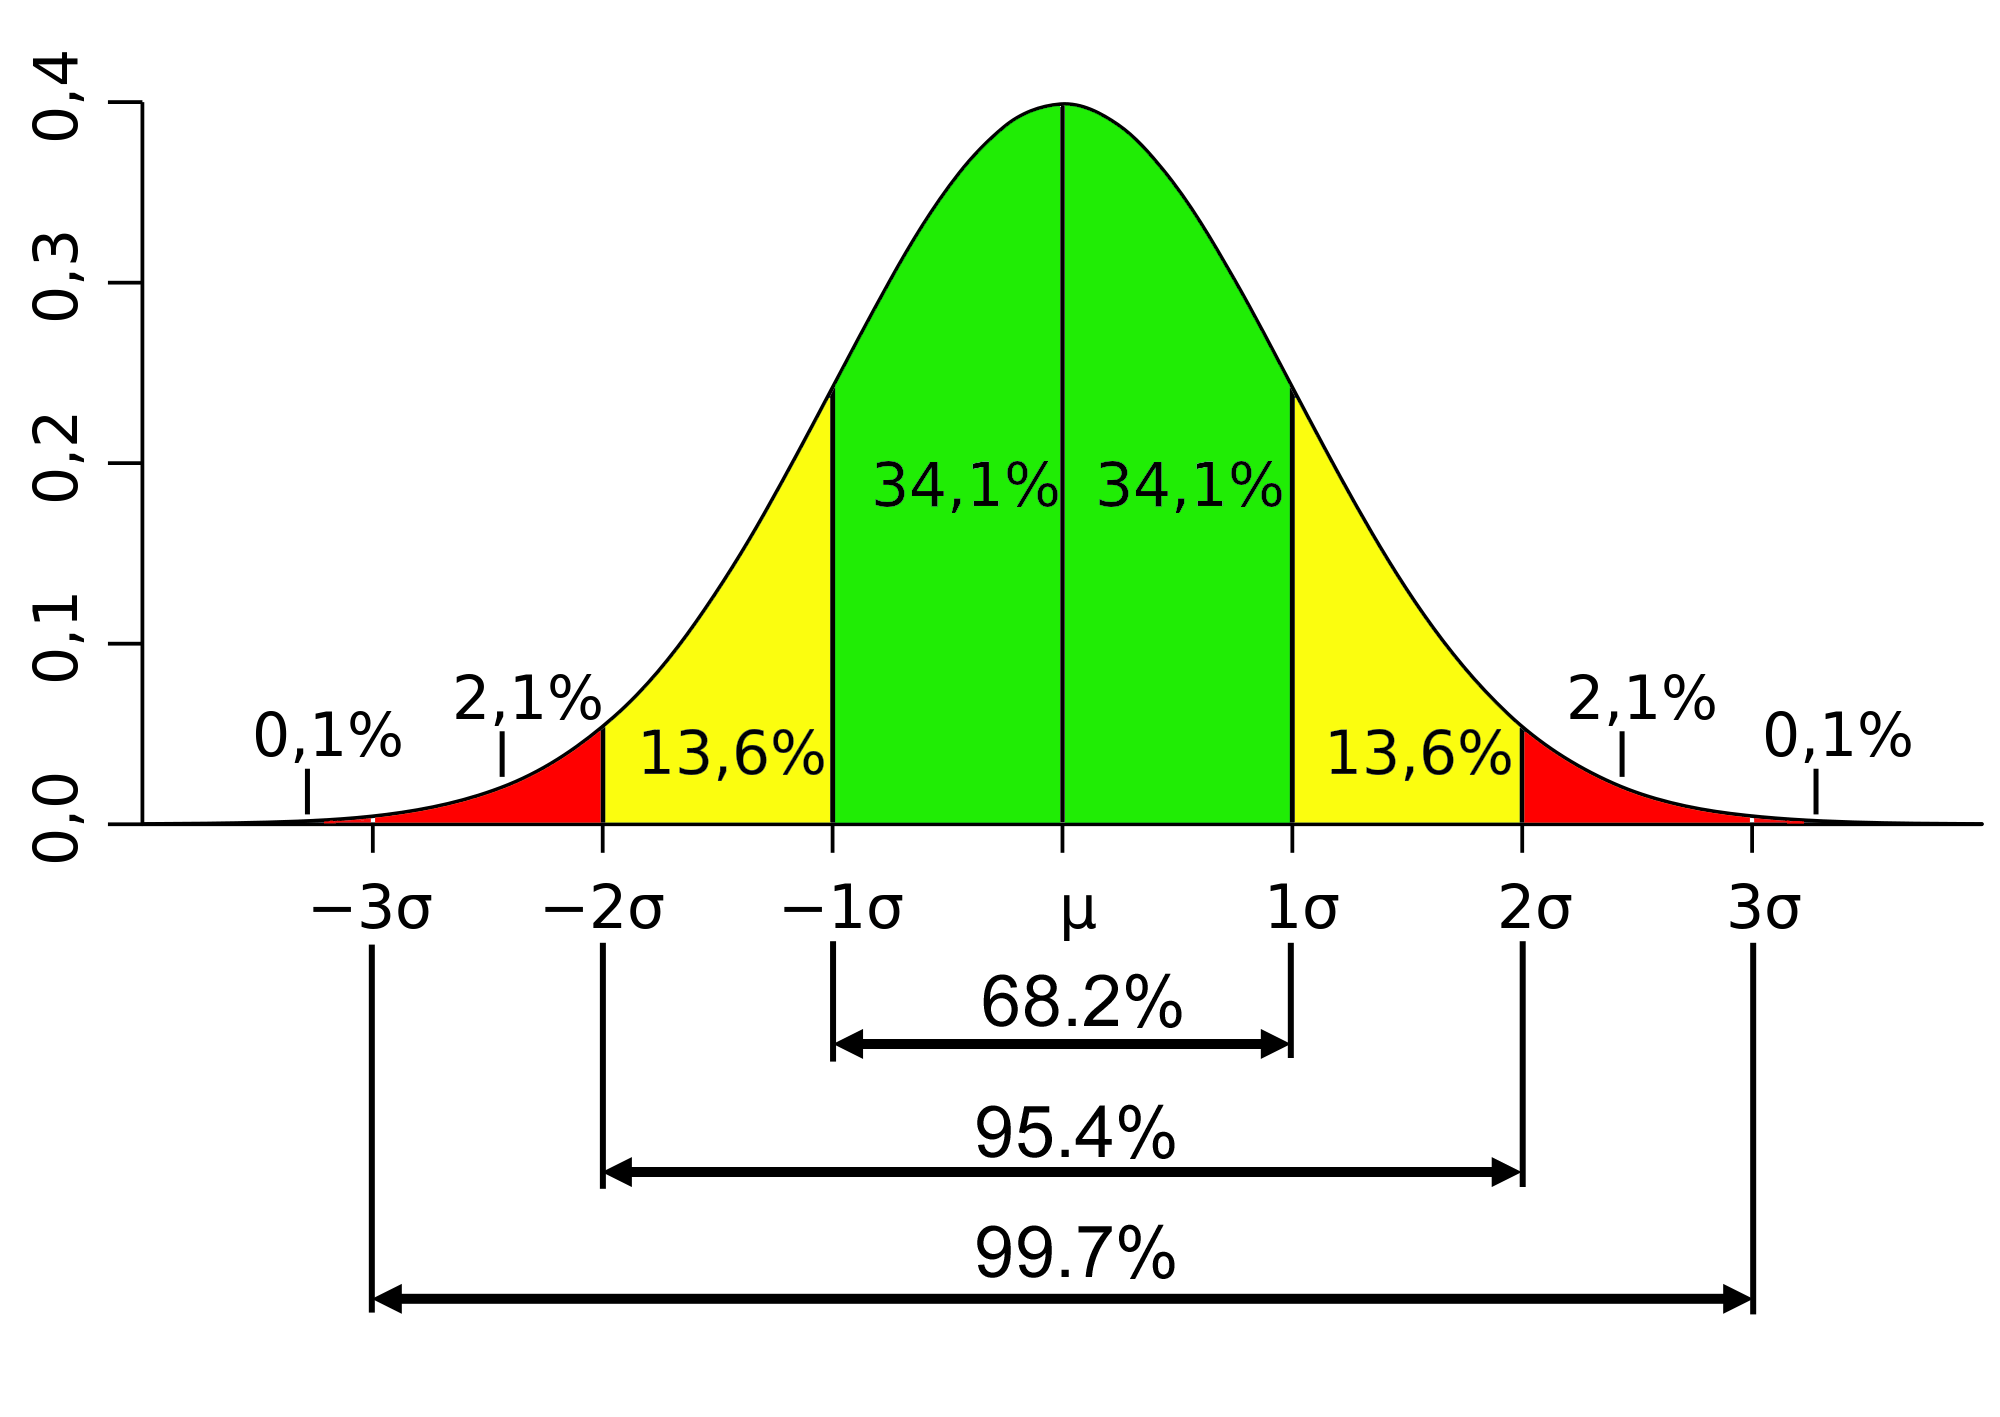 The 68-95-99 Statistical Distribution